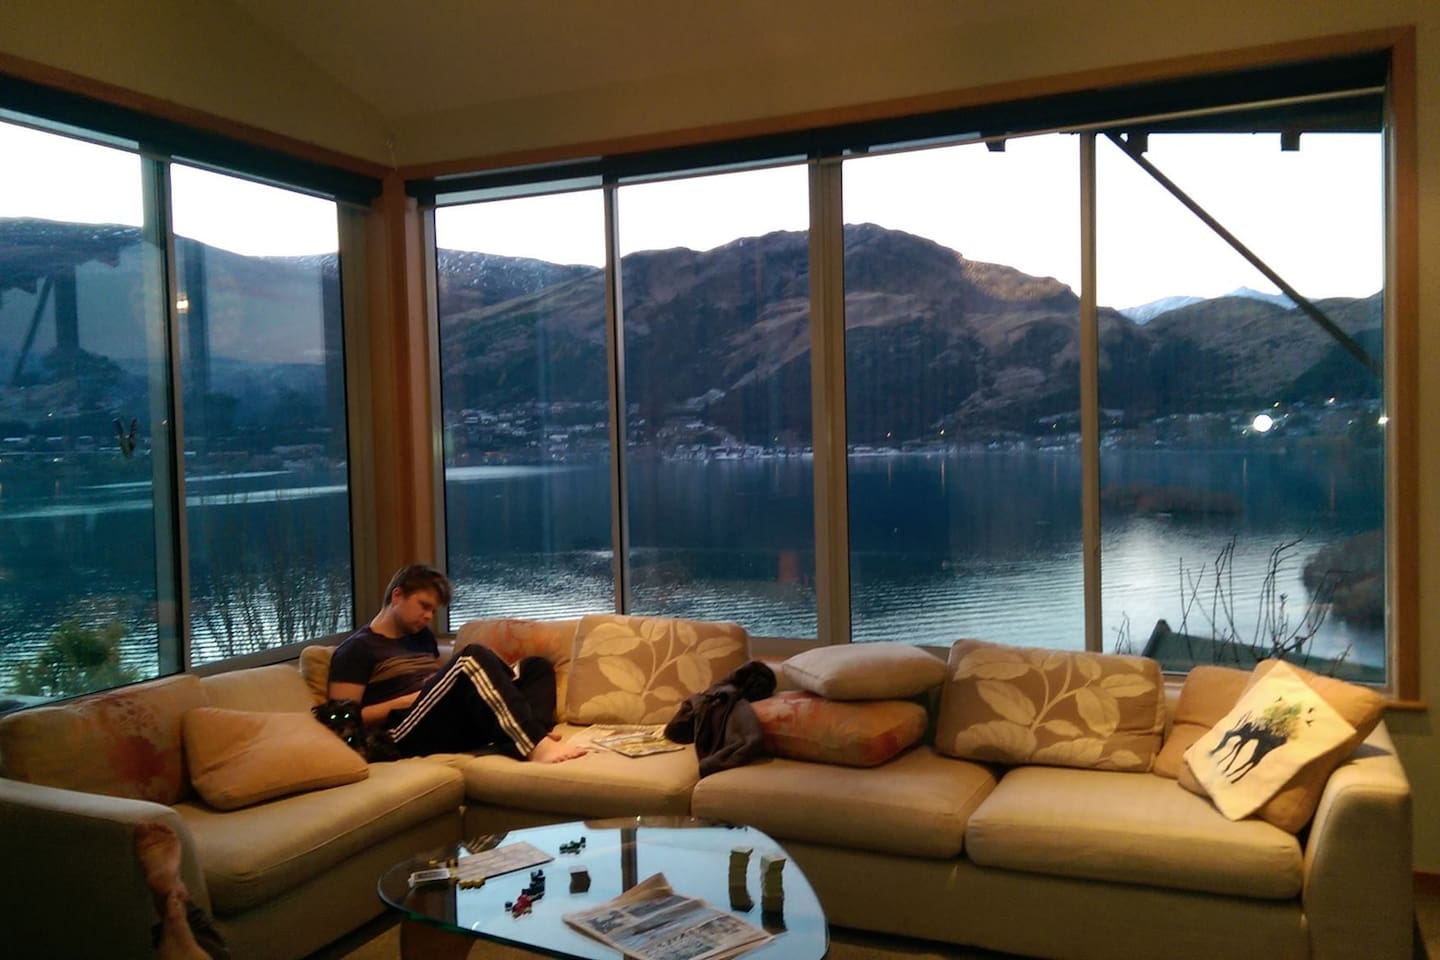 The perfect seat near the fire from which to enjoy the view of Lake Wakatipu and surrounding mountains.